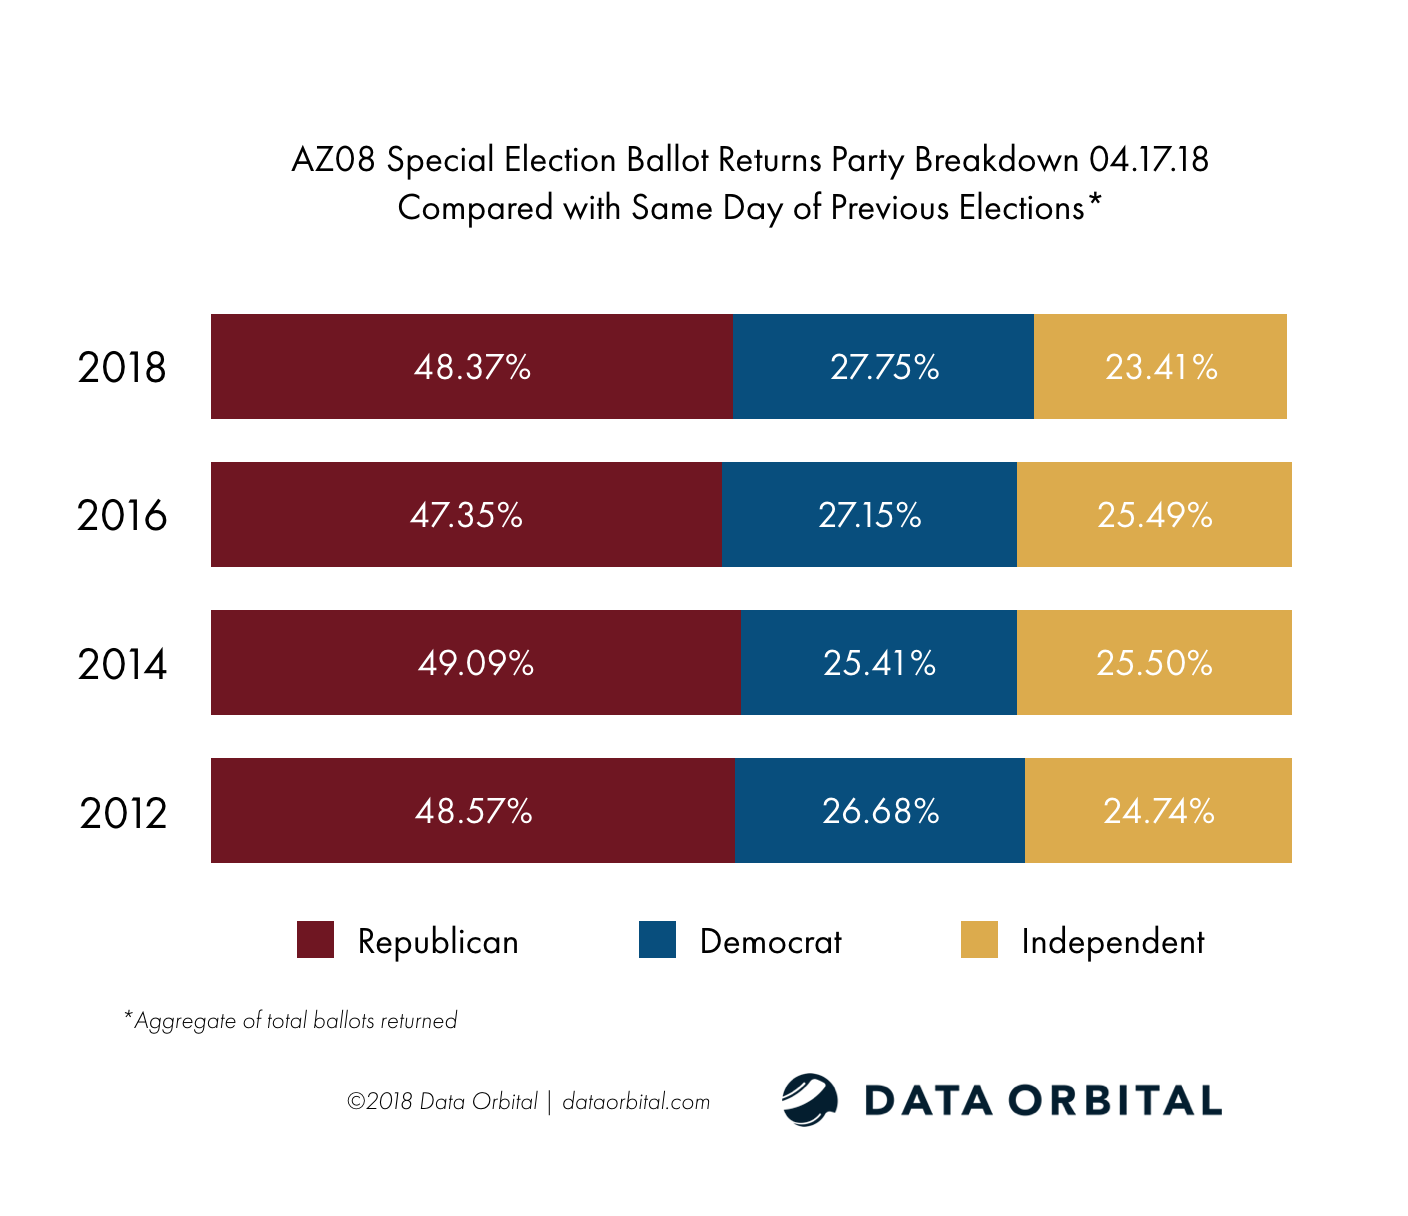 AZ08 Special Election Ballot Returns Party Breakdown Compared with Same Day of Previous Election 04.17.18